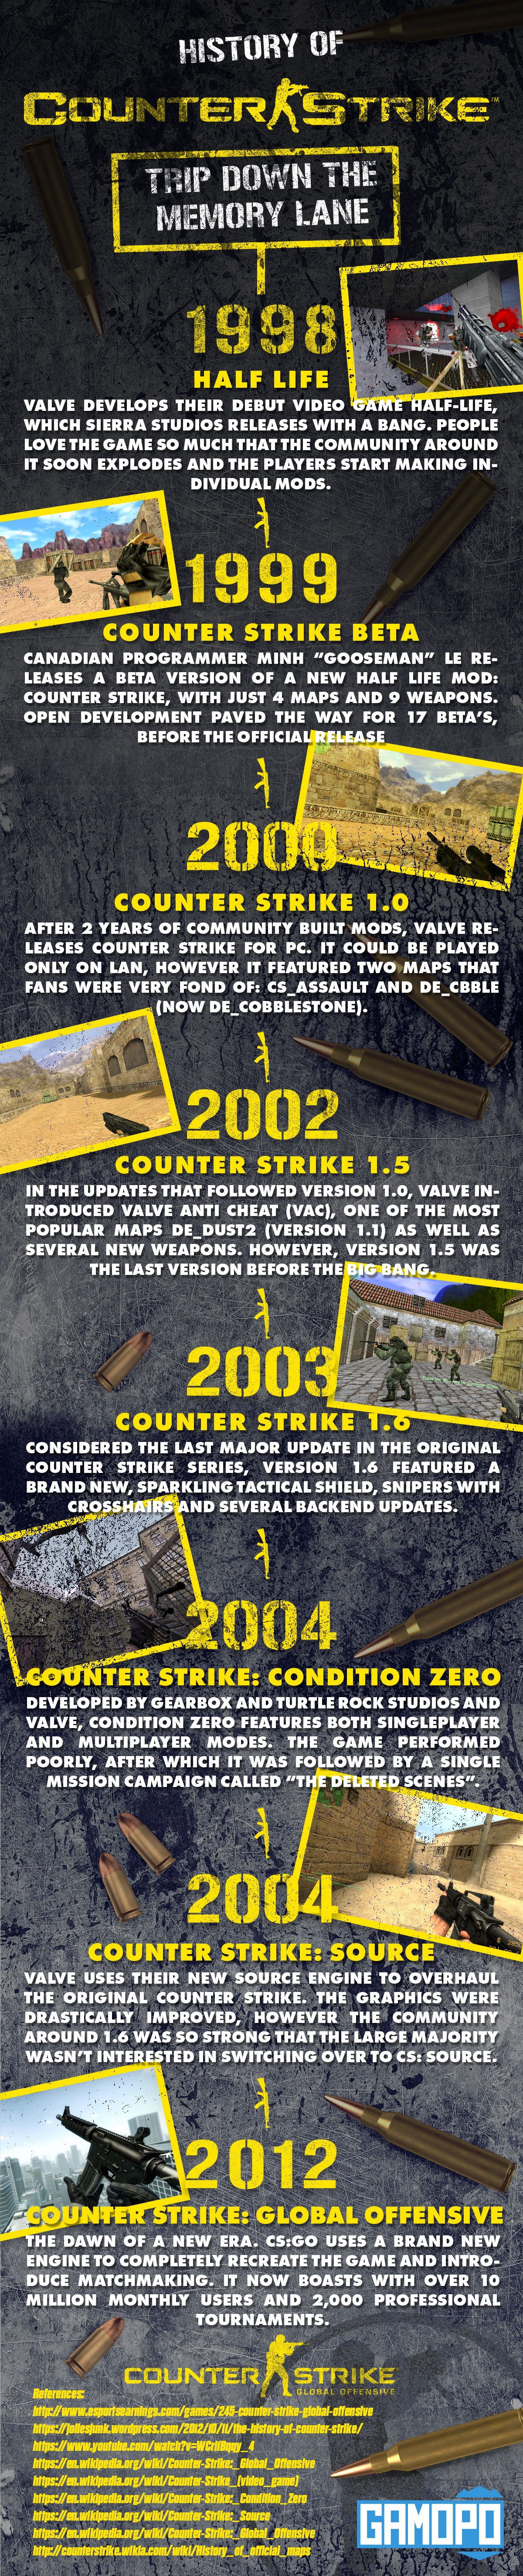 history-of-counterstrike